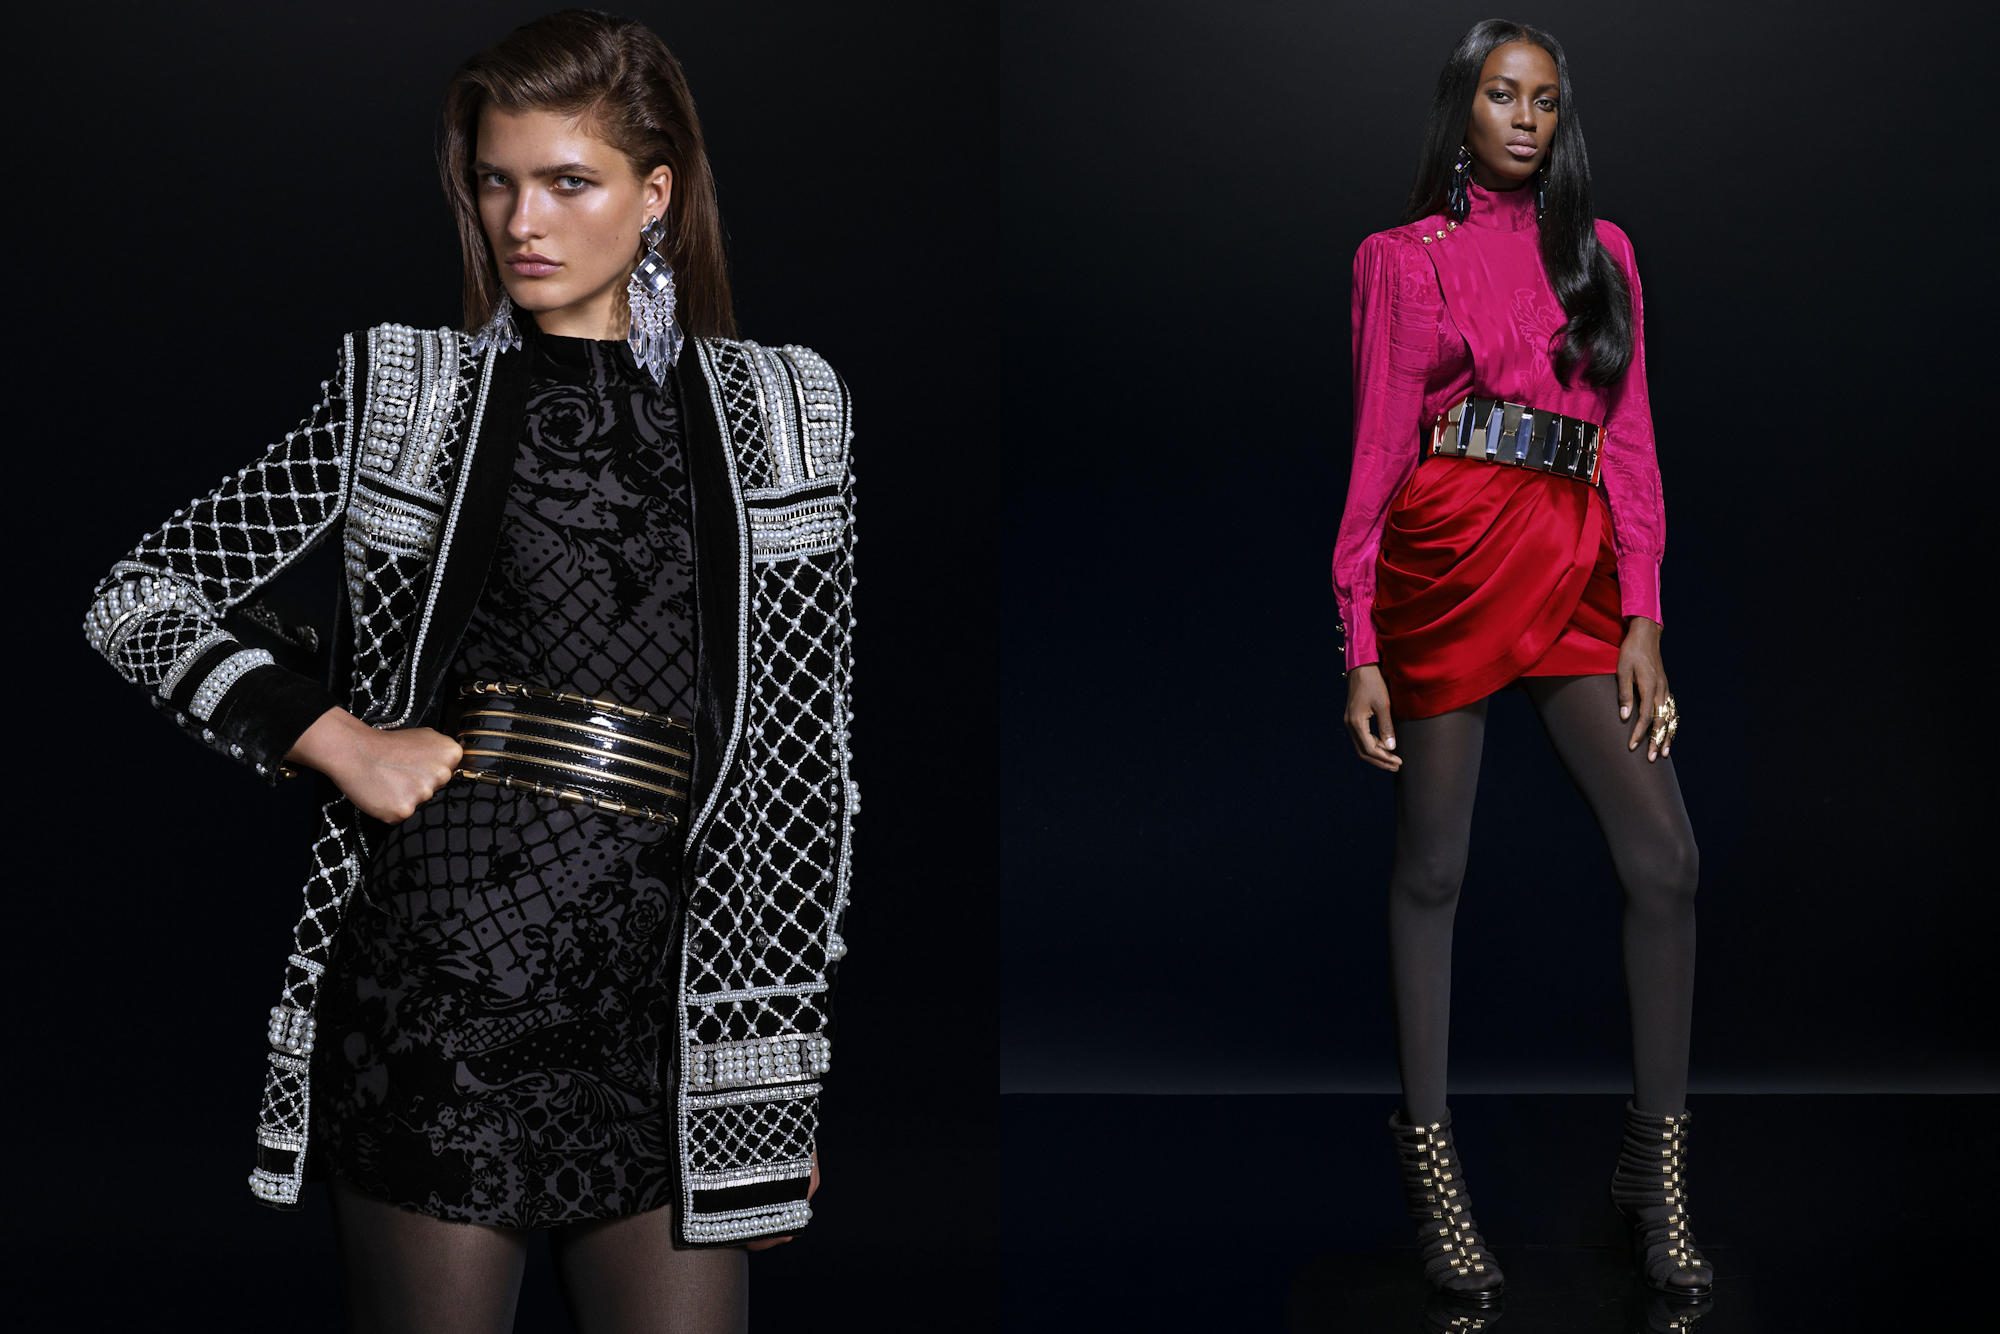 Collection Collection Collection M Balmain Balmain Balmain La Toutes Femme Du De Les Lookbook X Photos H wwEqF4